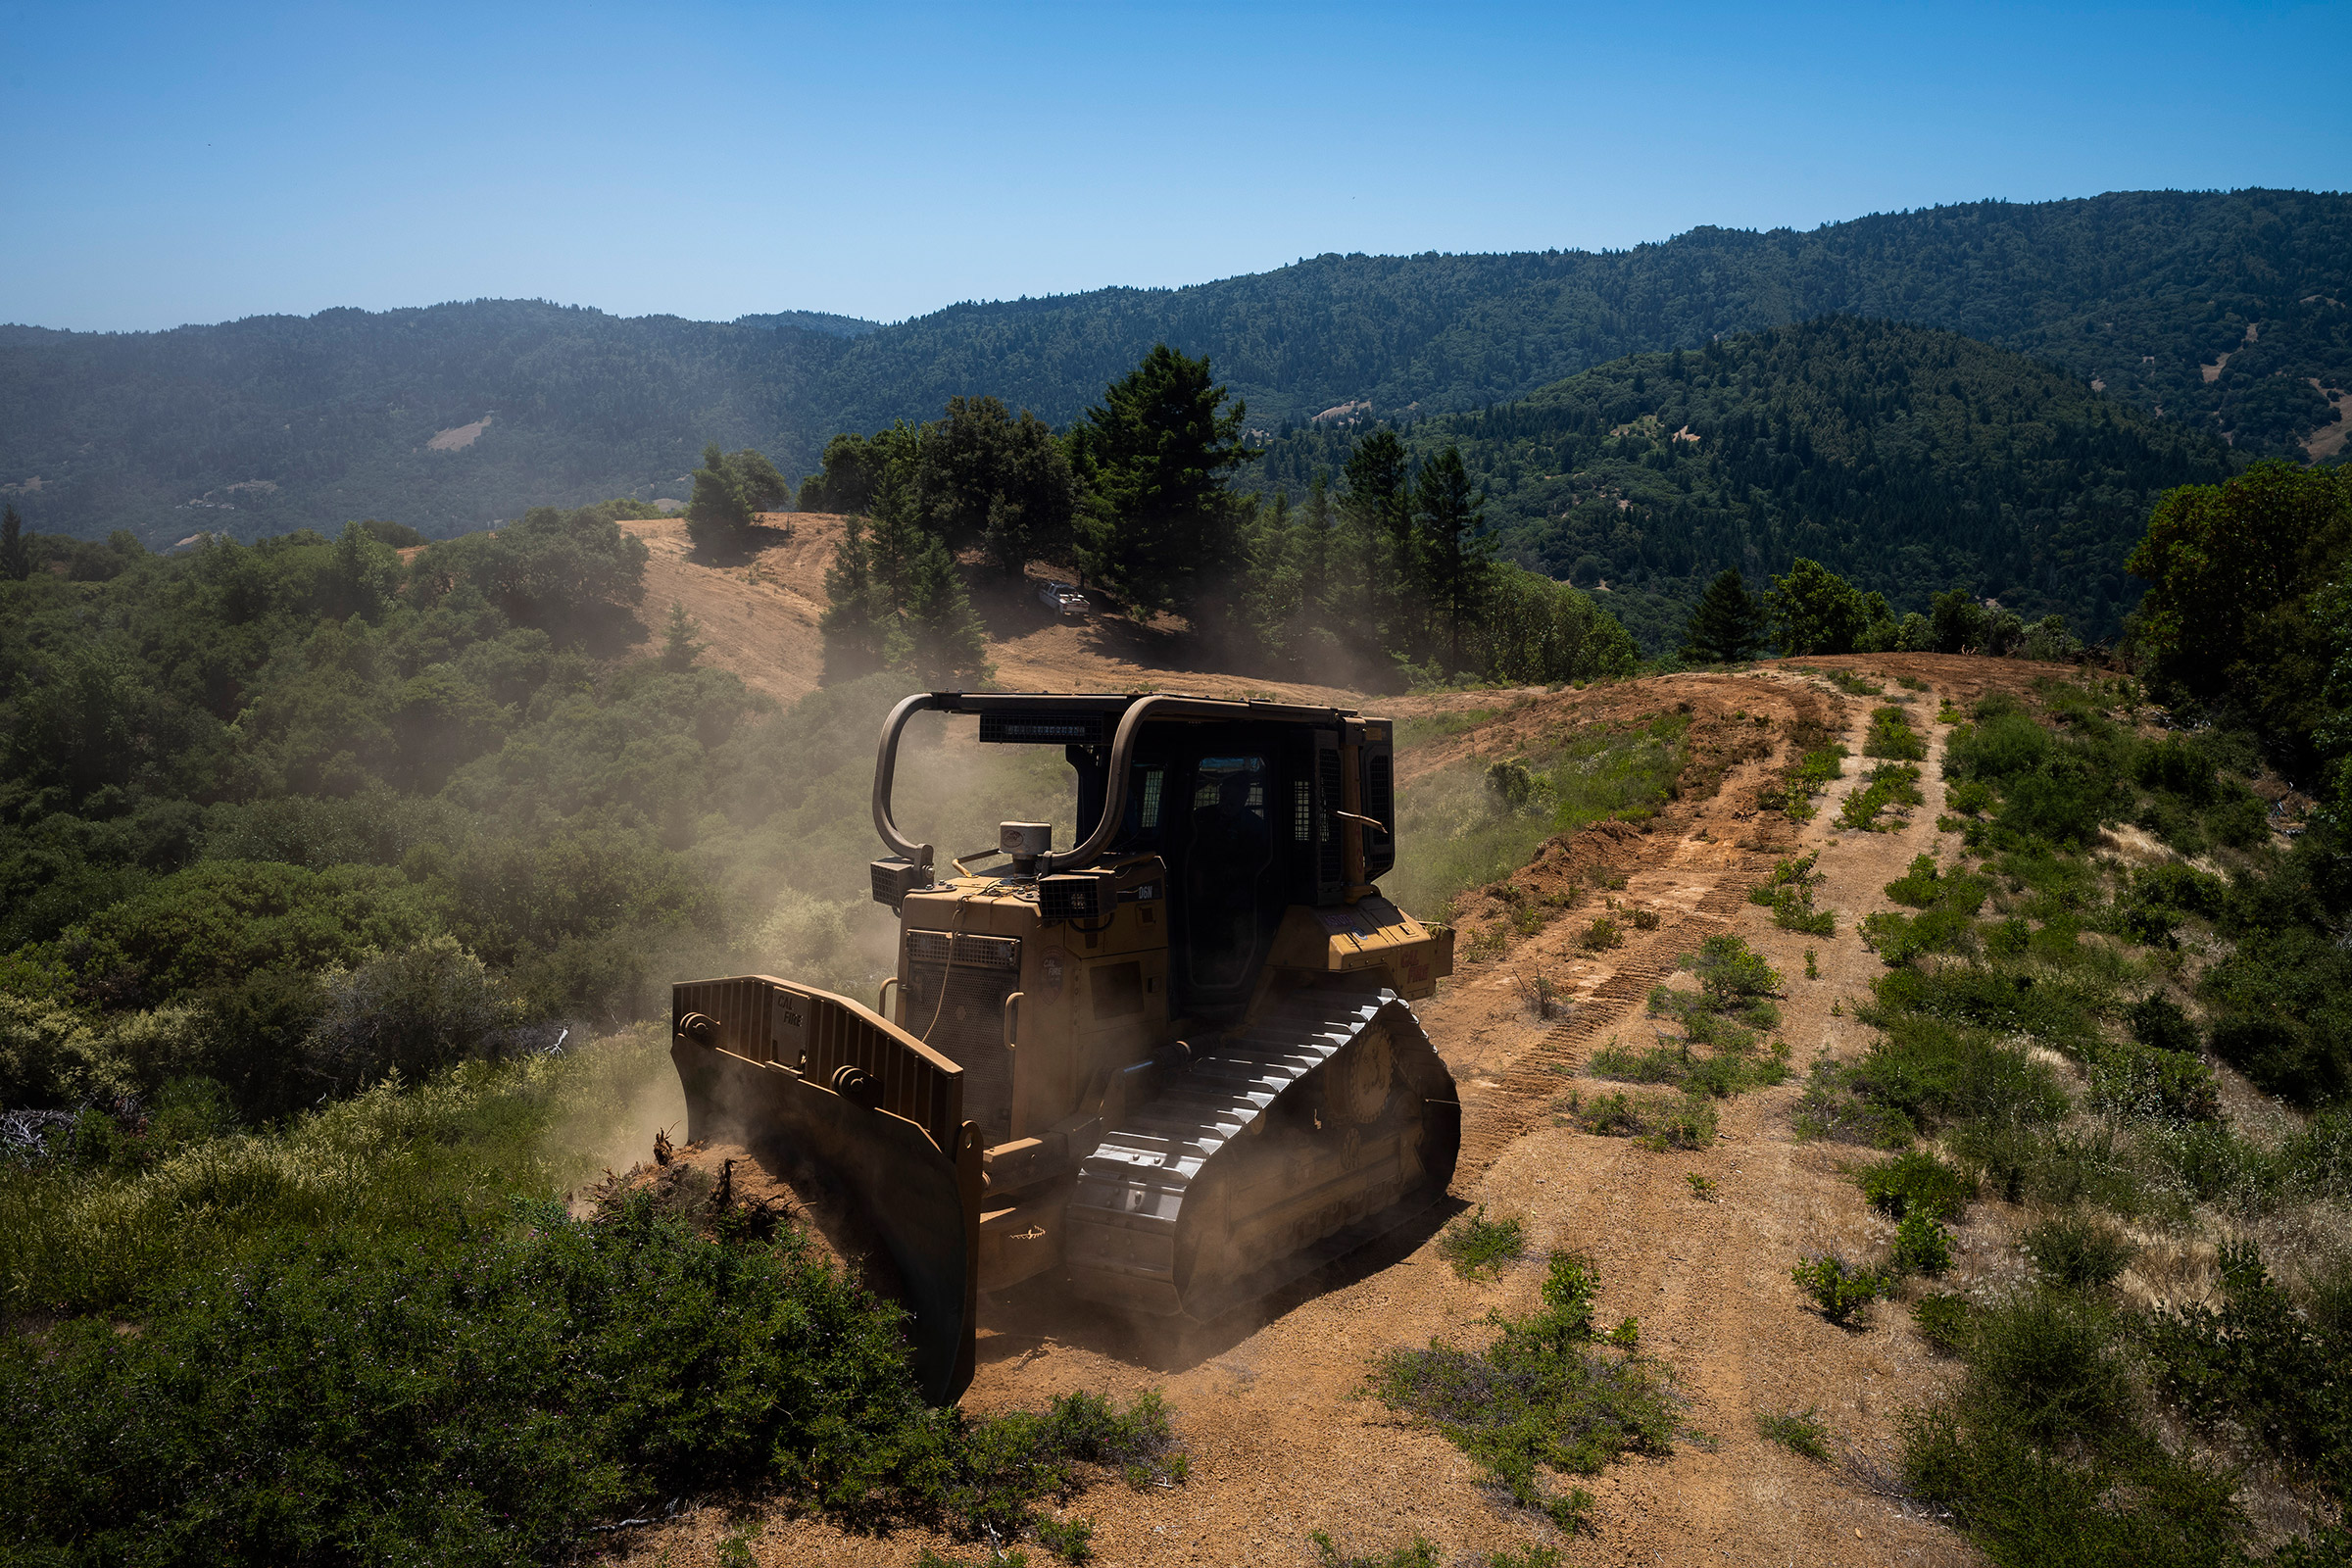 A bulldozer works on a firebreak, a gap in vegetation that acts as a barrier to slow the progress of a wildfire, in the hills surrounding Ukiah.